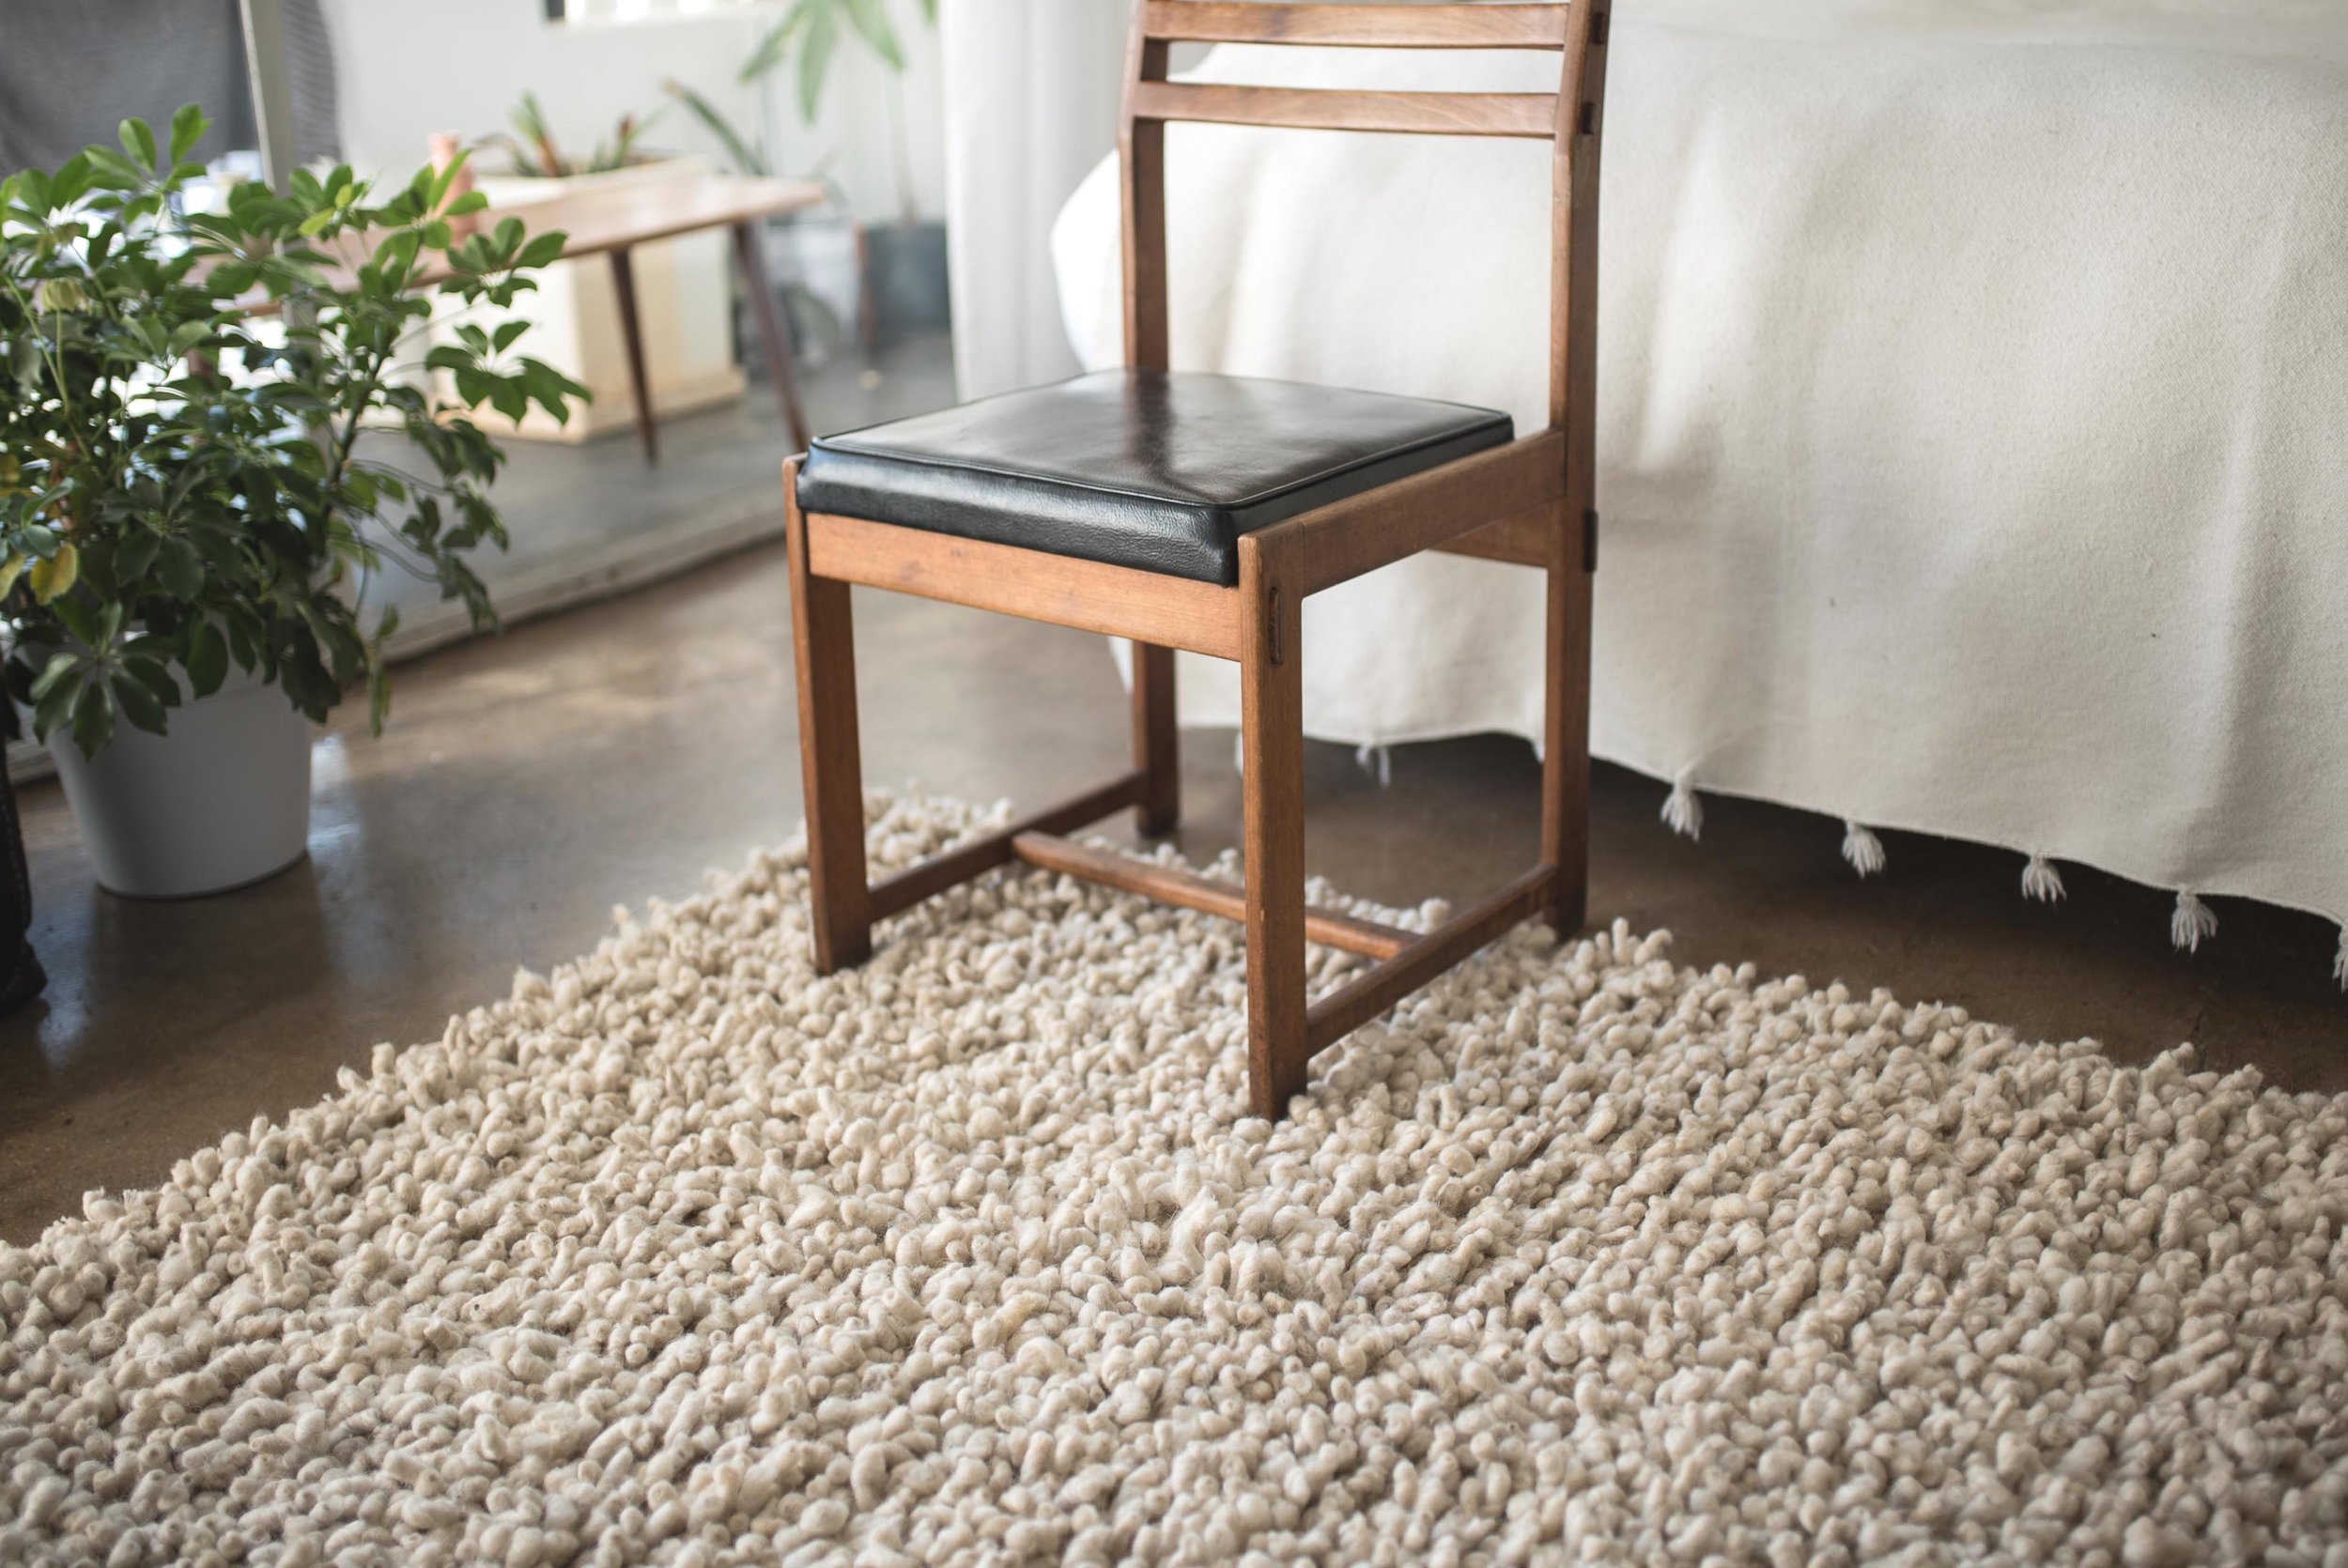 Karakul wool carpet, tufted weave design in natural white